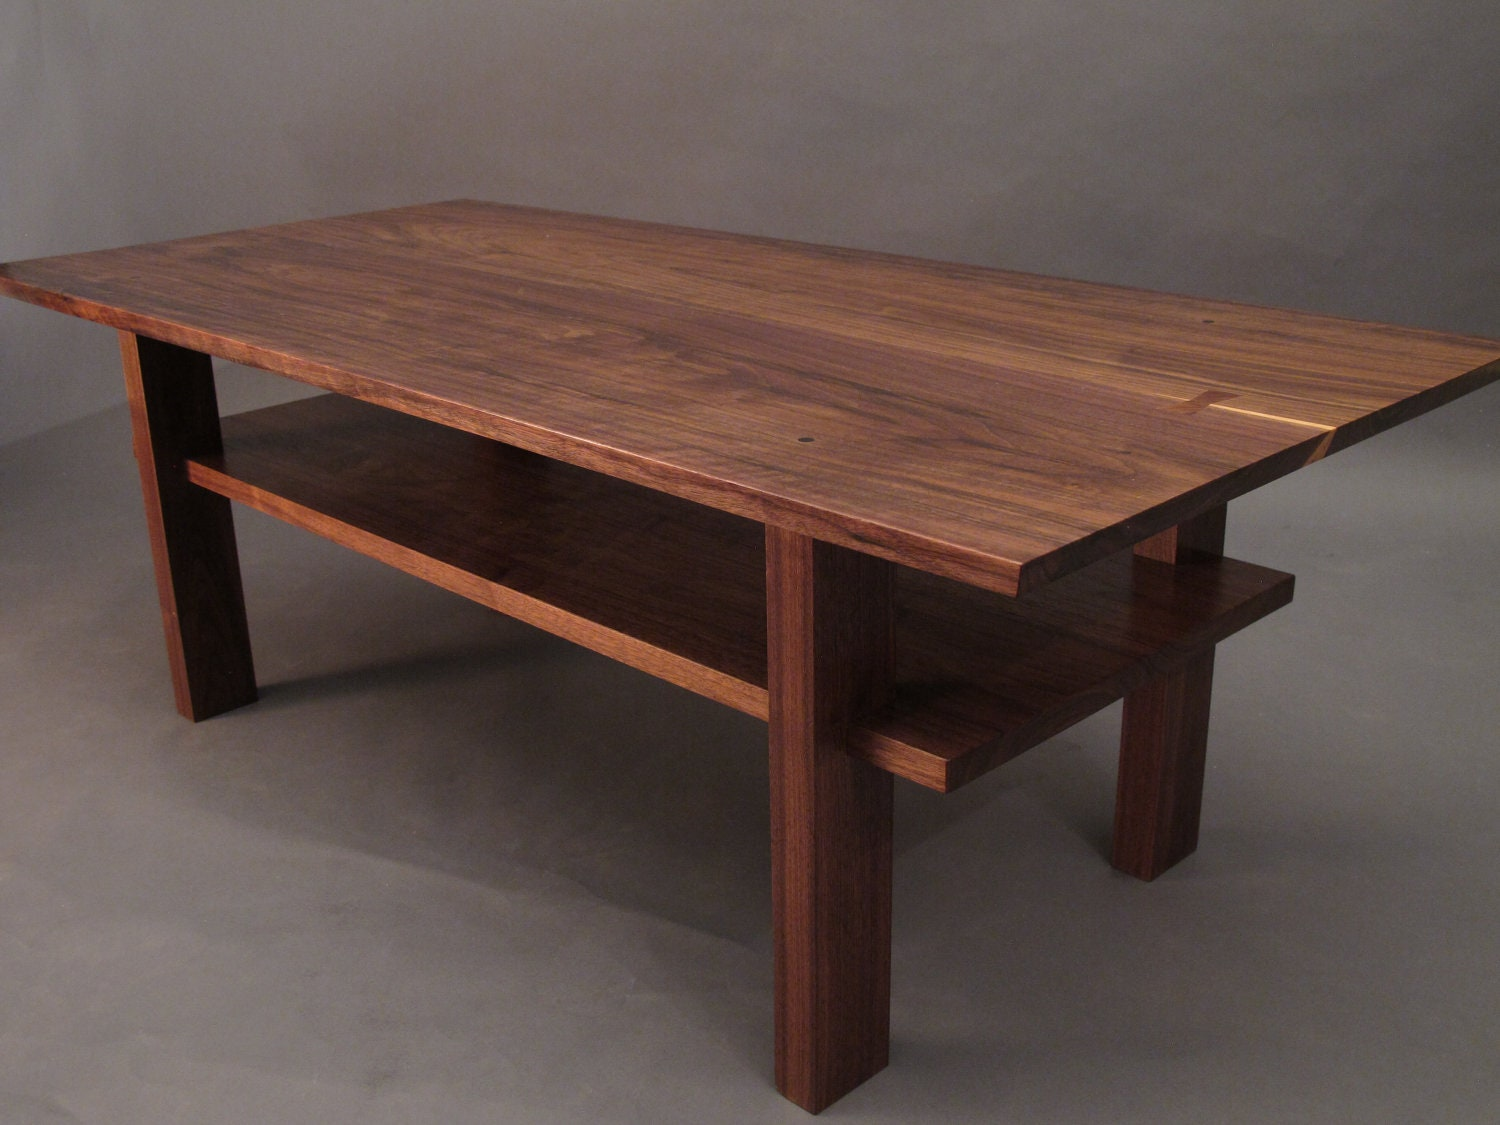 Walnut coffee table small wood tables for living room narrow Furniture coffee tables